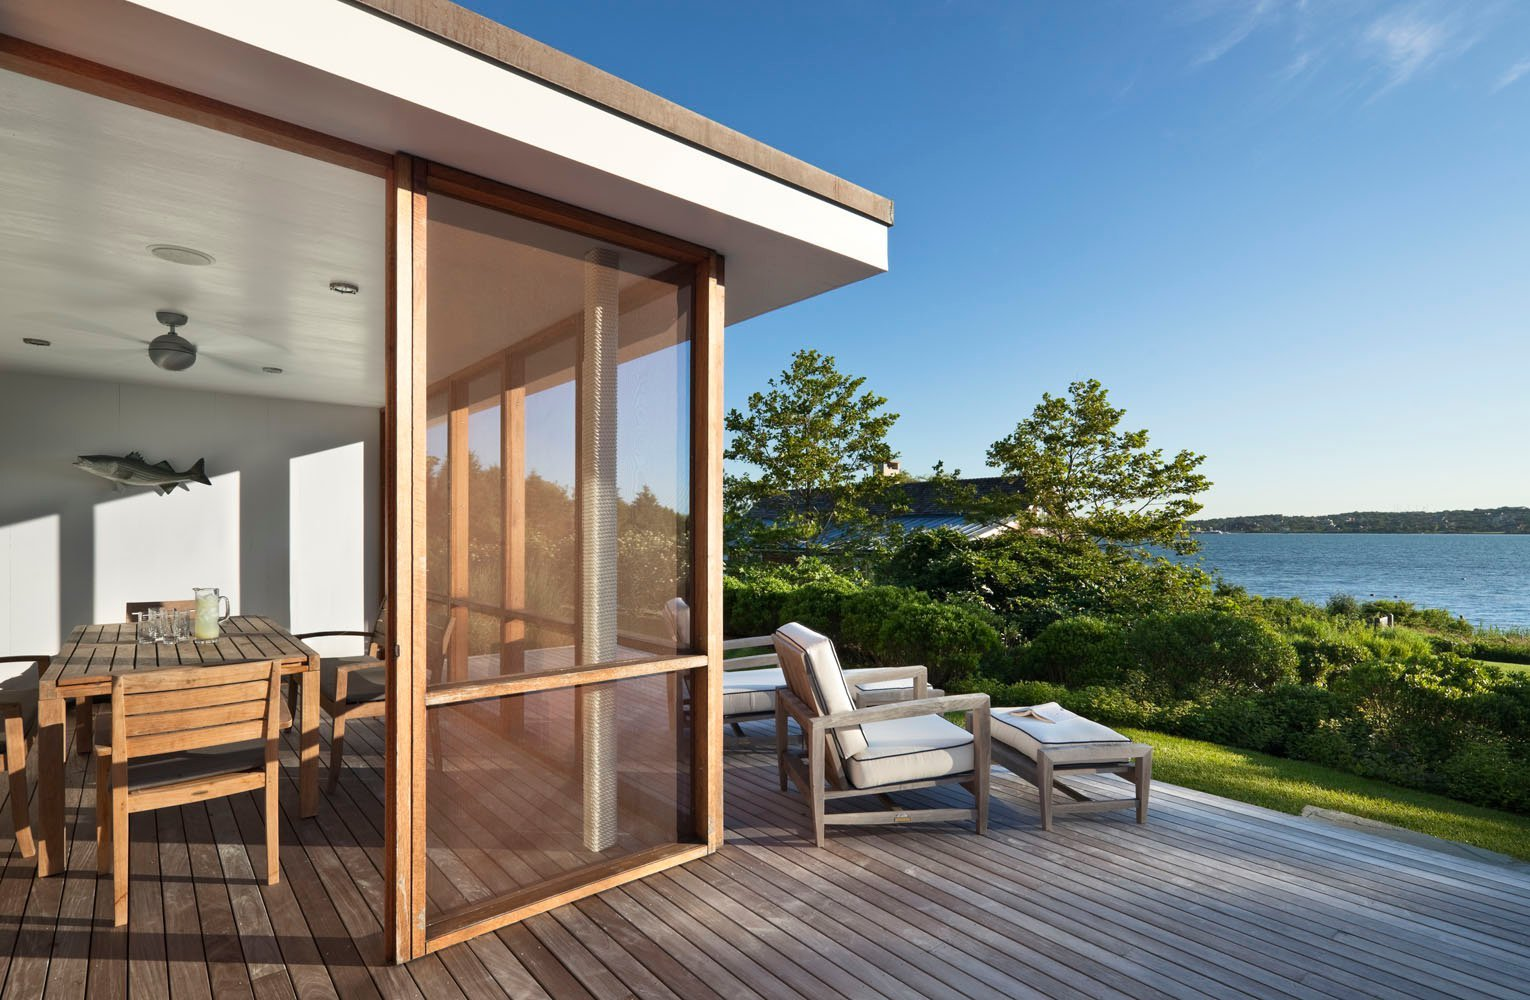 Montauk Lake House designer by Robert Young Architecture & Interiors